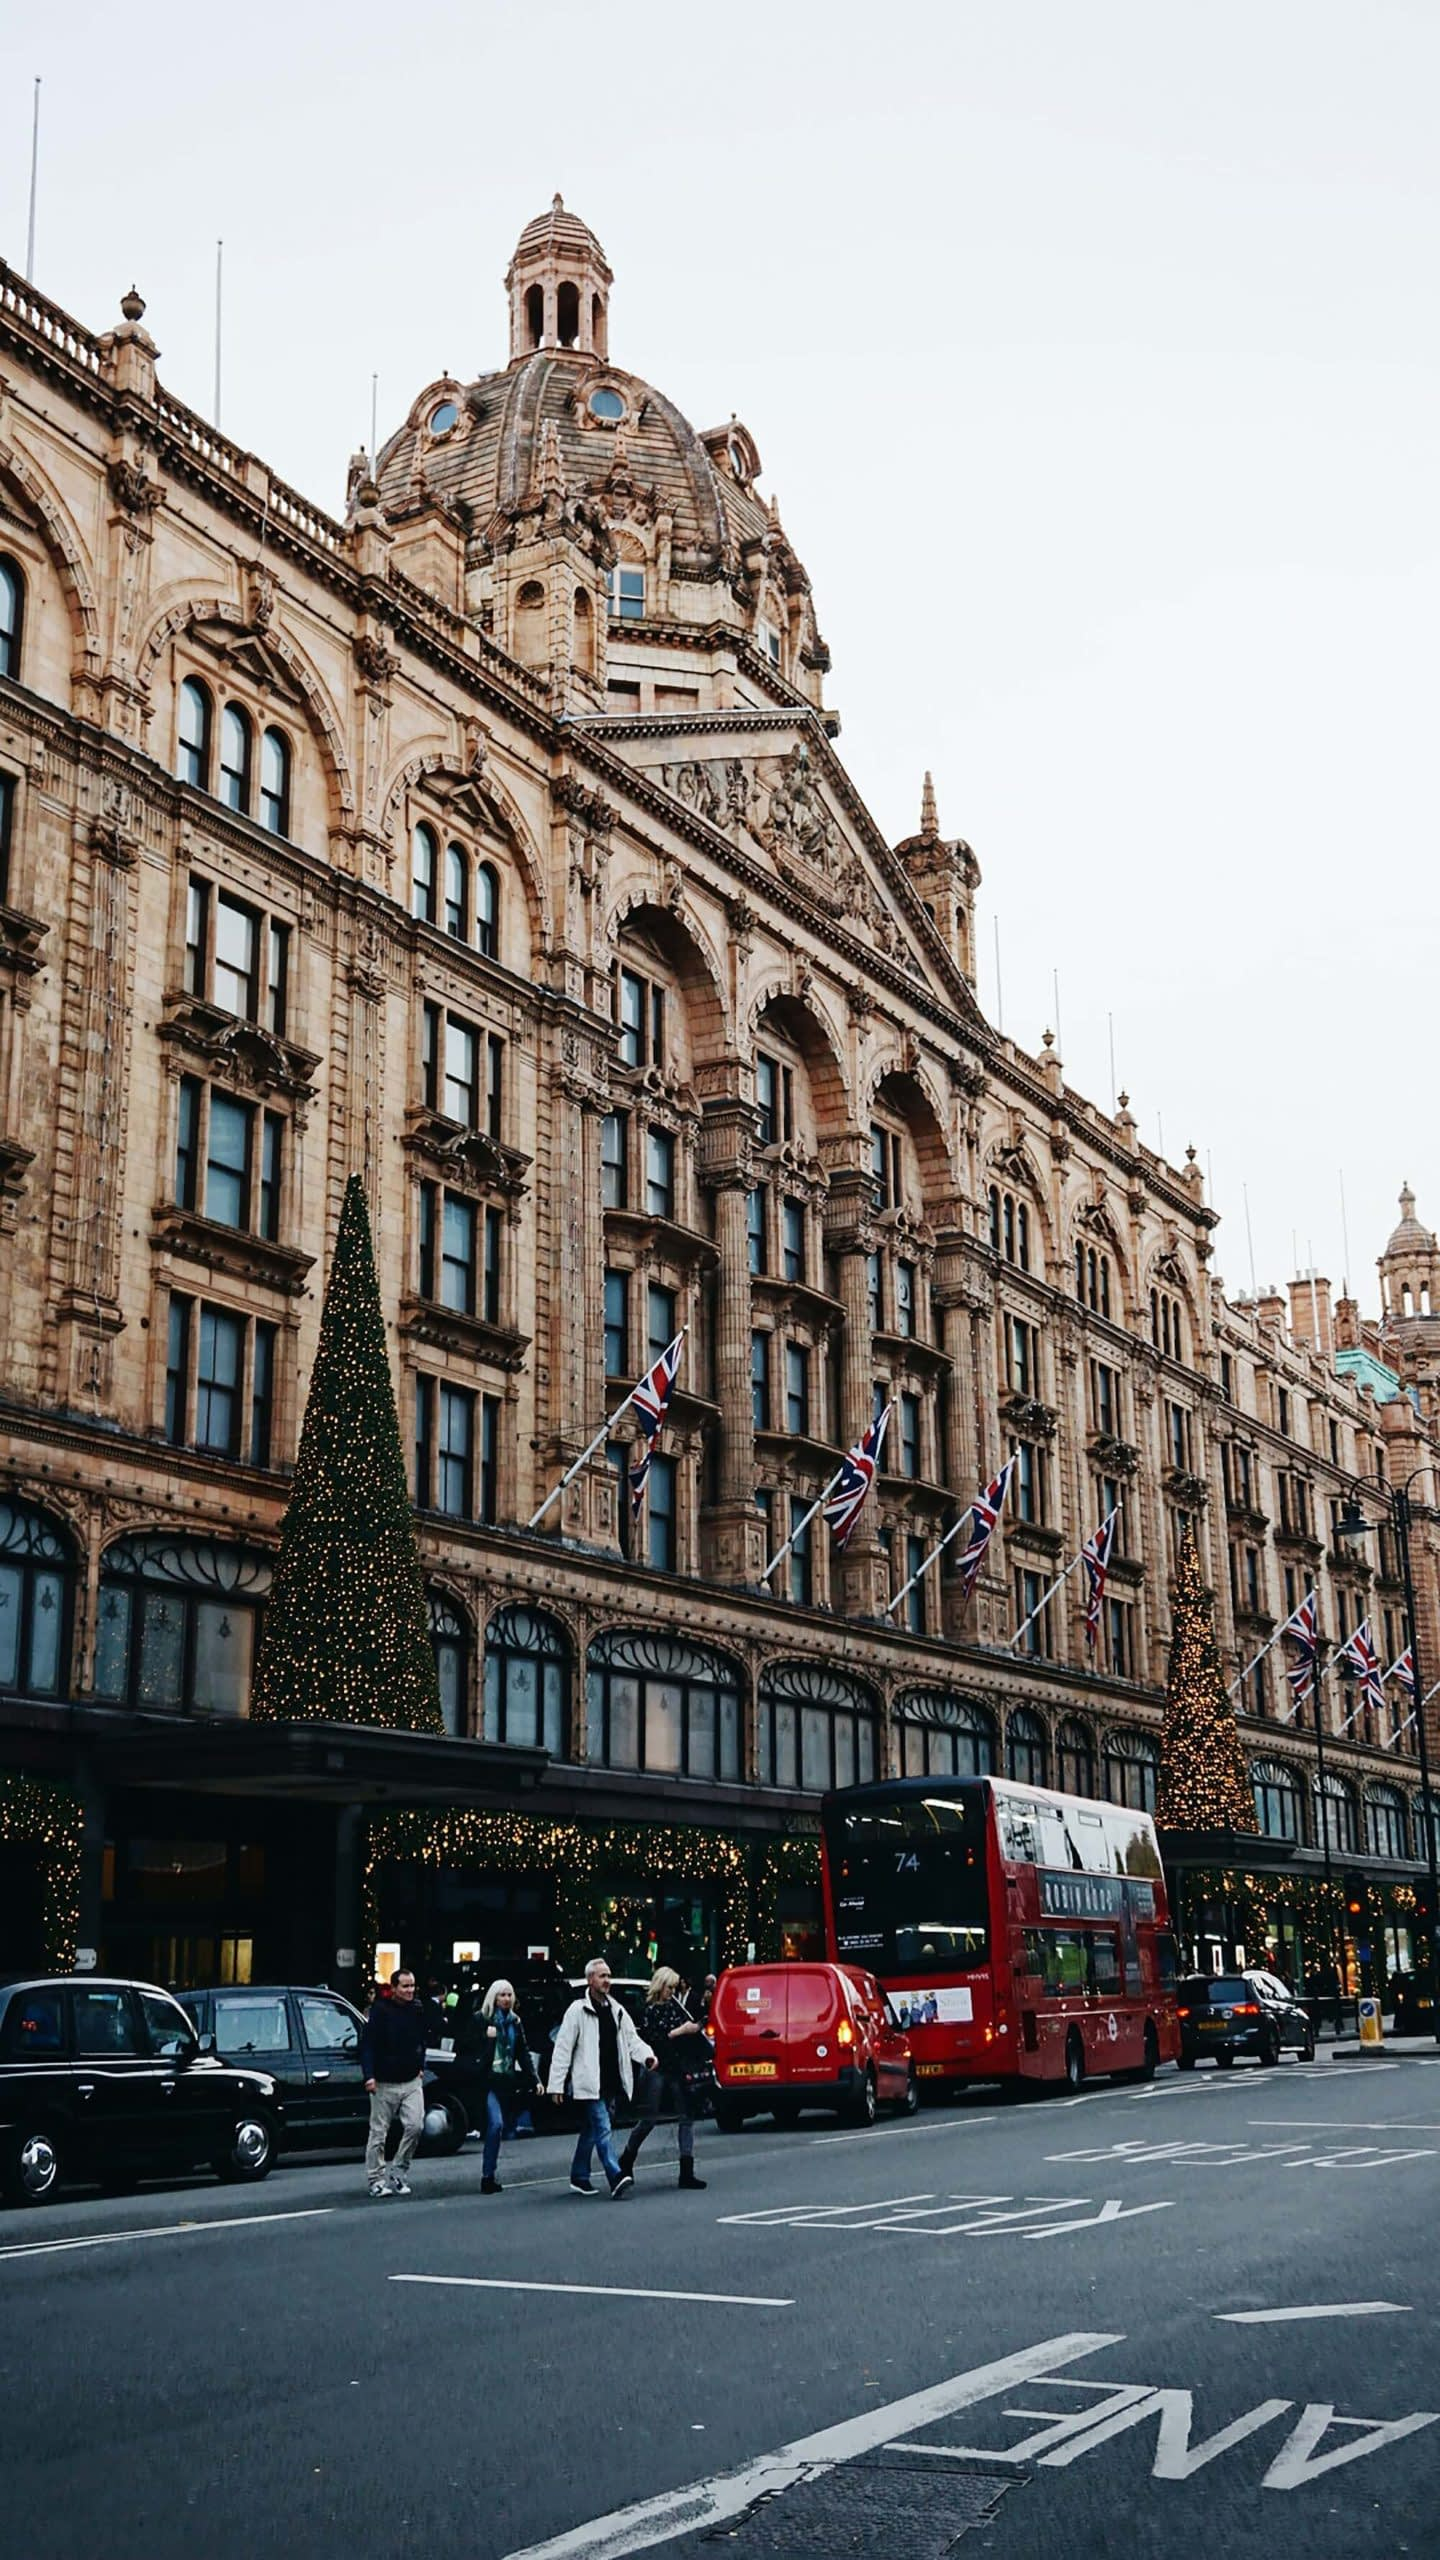 Shopping at Harrods Department Store London